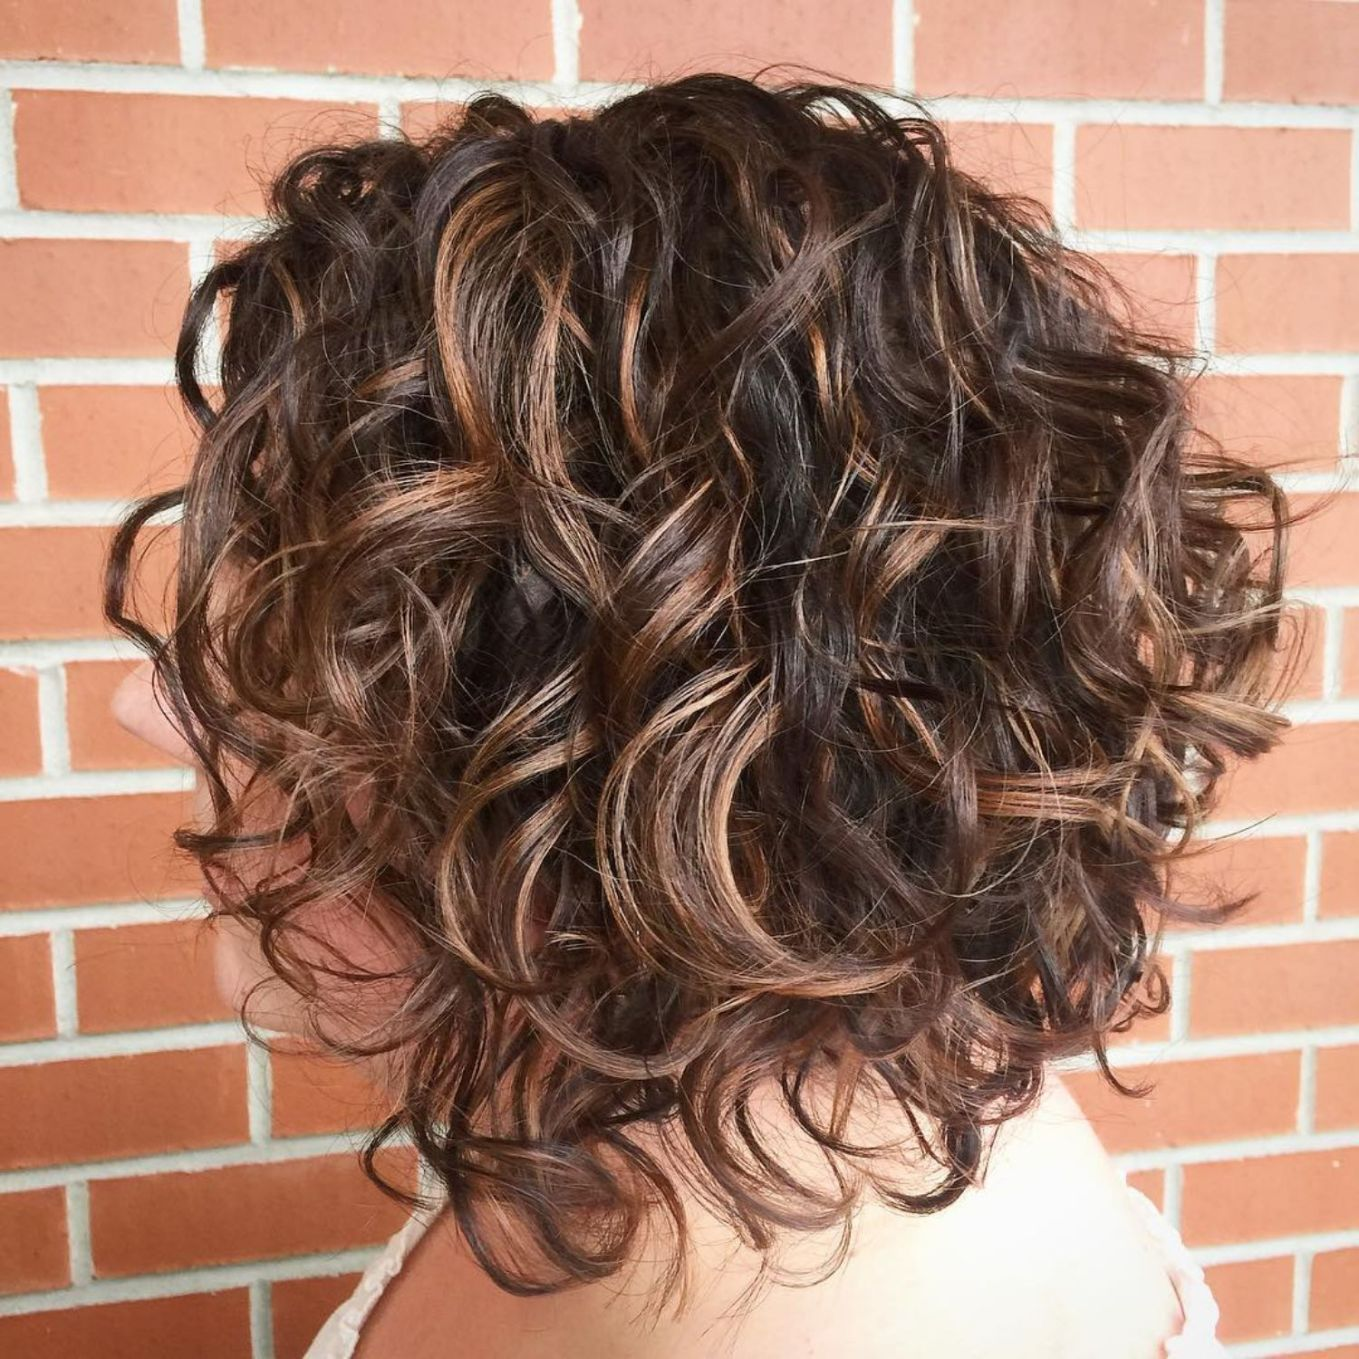 65 Different Versions of Curly Bob Hairstyle in 2020 | Curly hair photos, Bob haircut curly, Bob ...